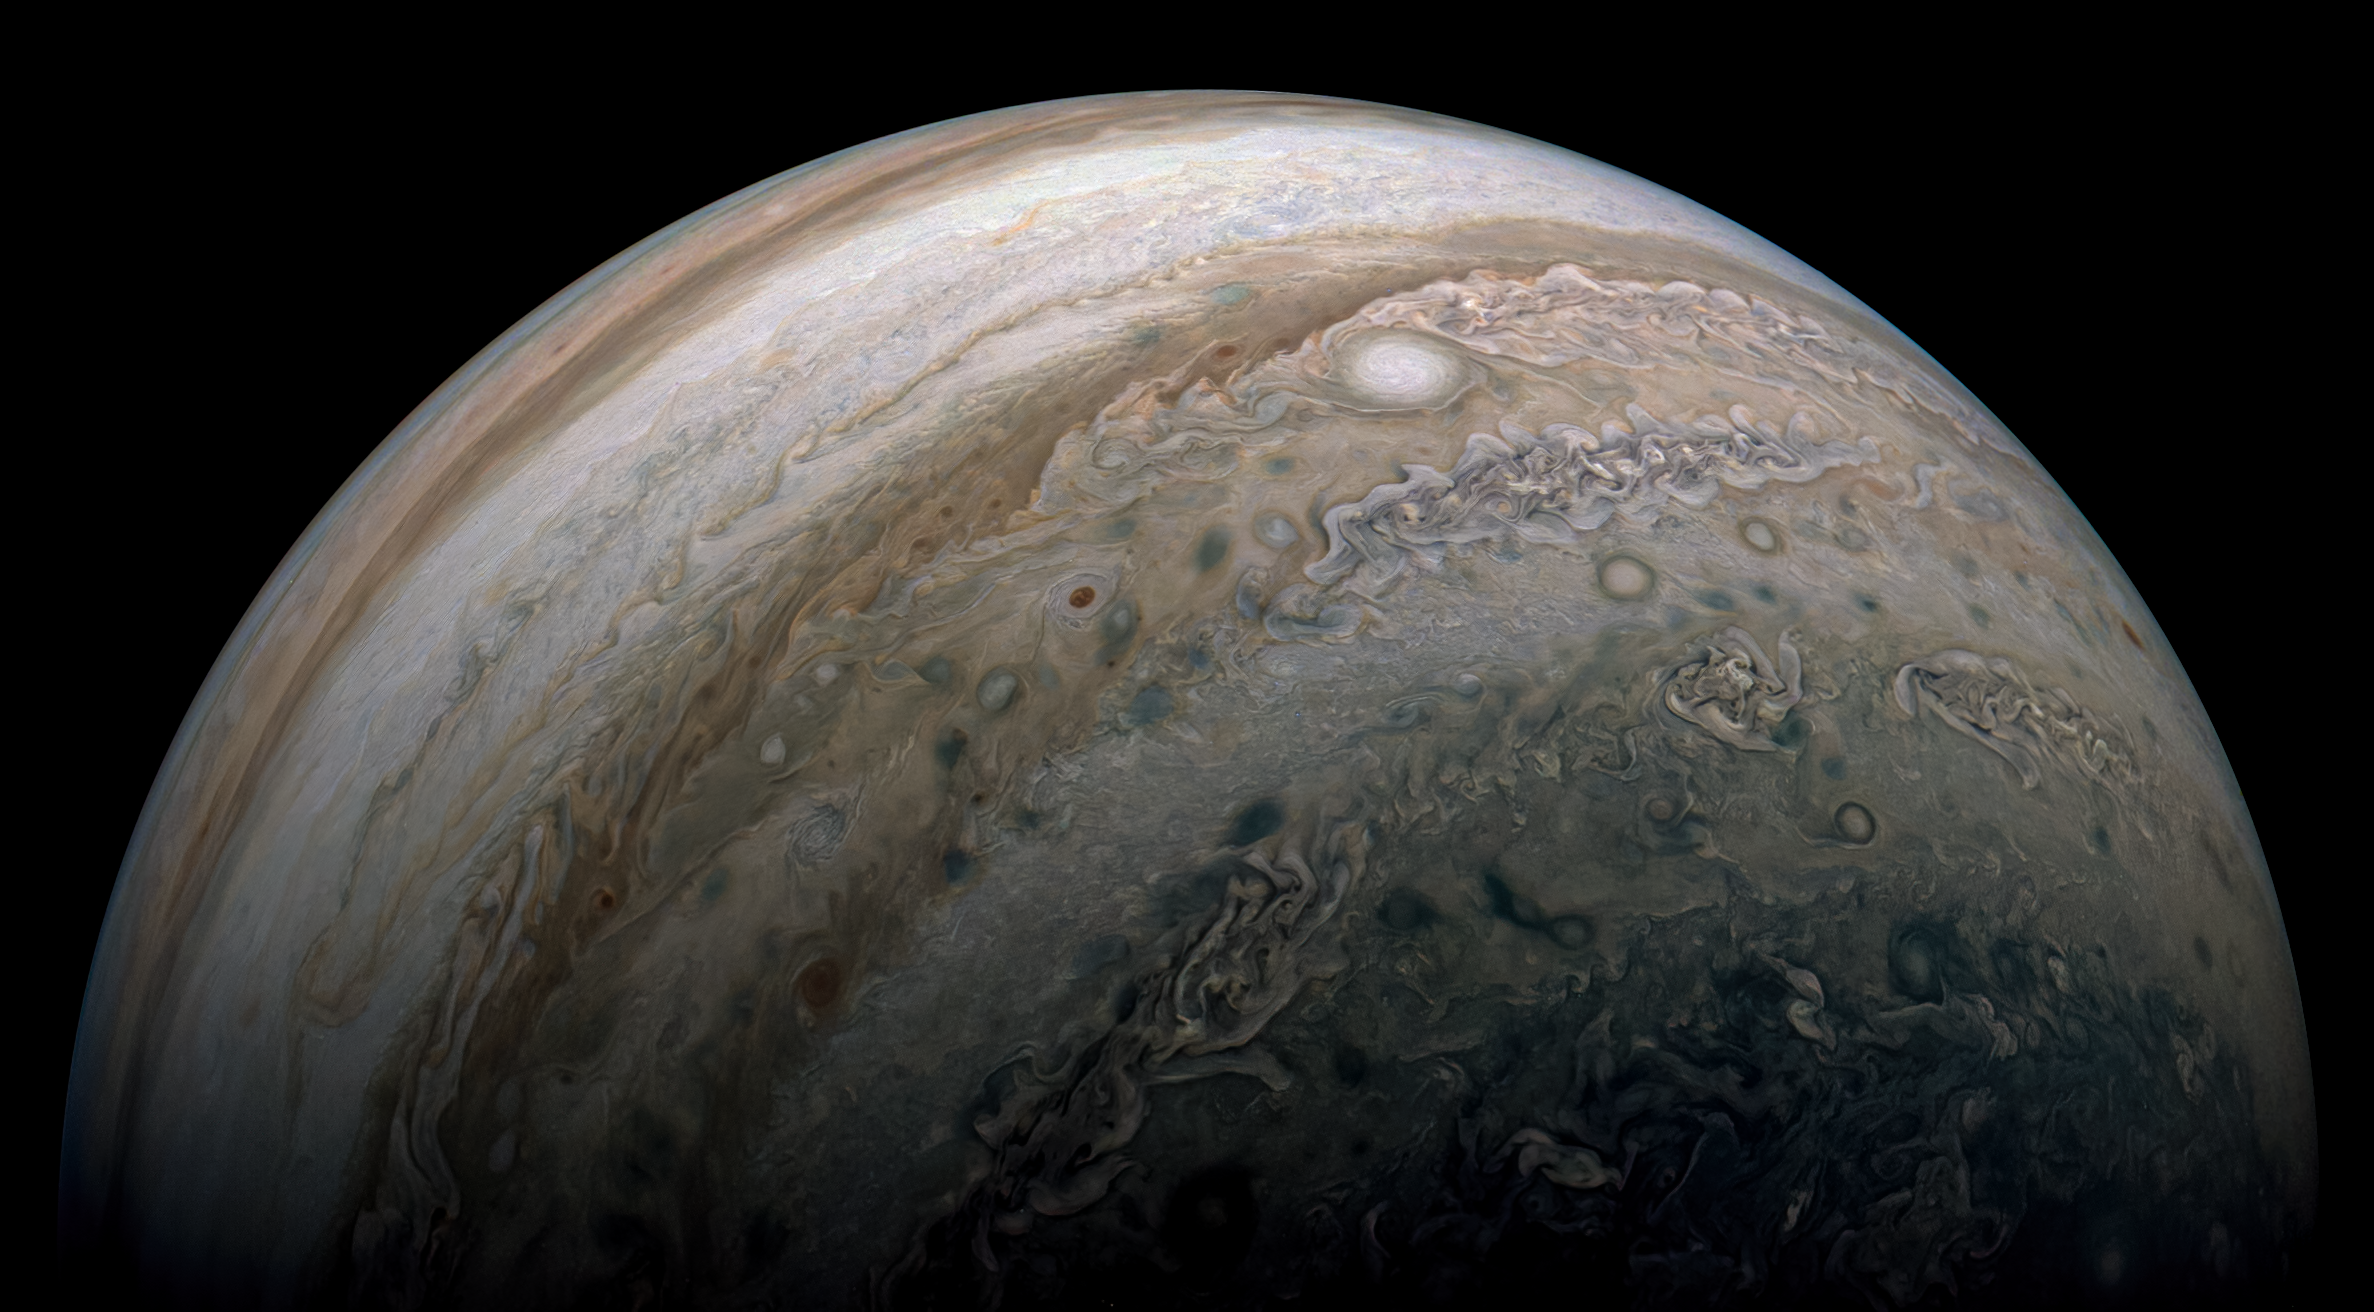 Jupiter imaged in November 2020 by the Juno spacecraft on its 30th perijove. Processed by Kevin Gill.